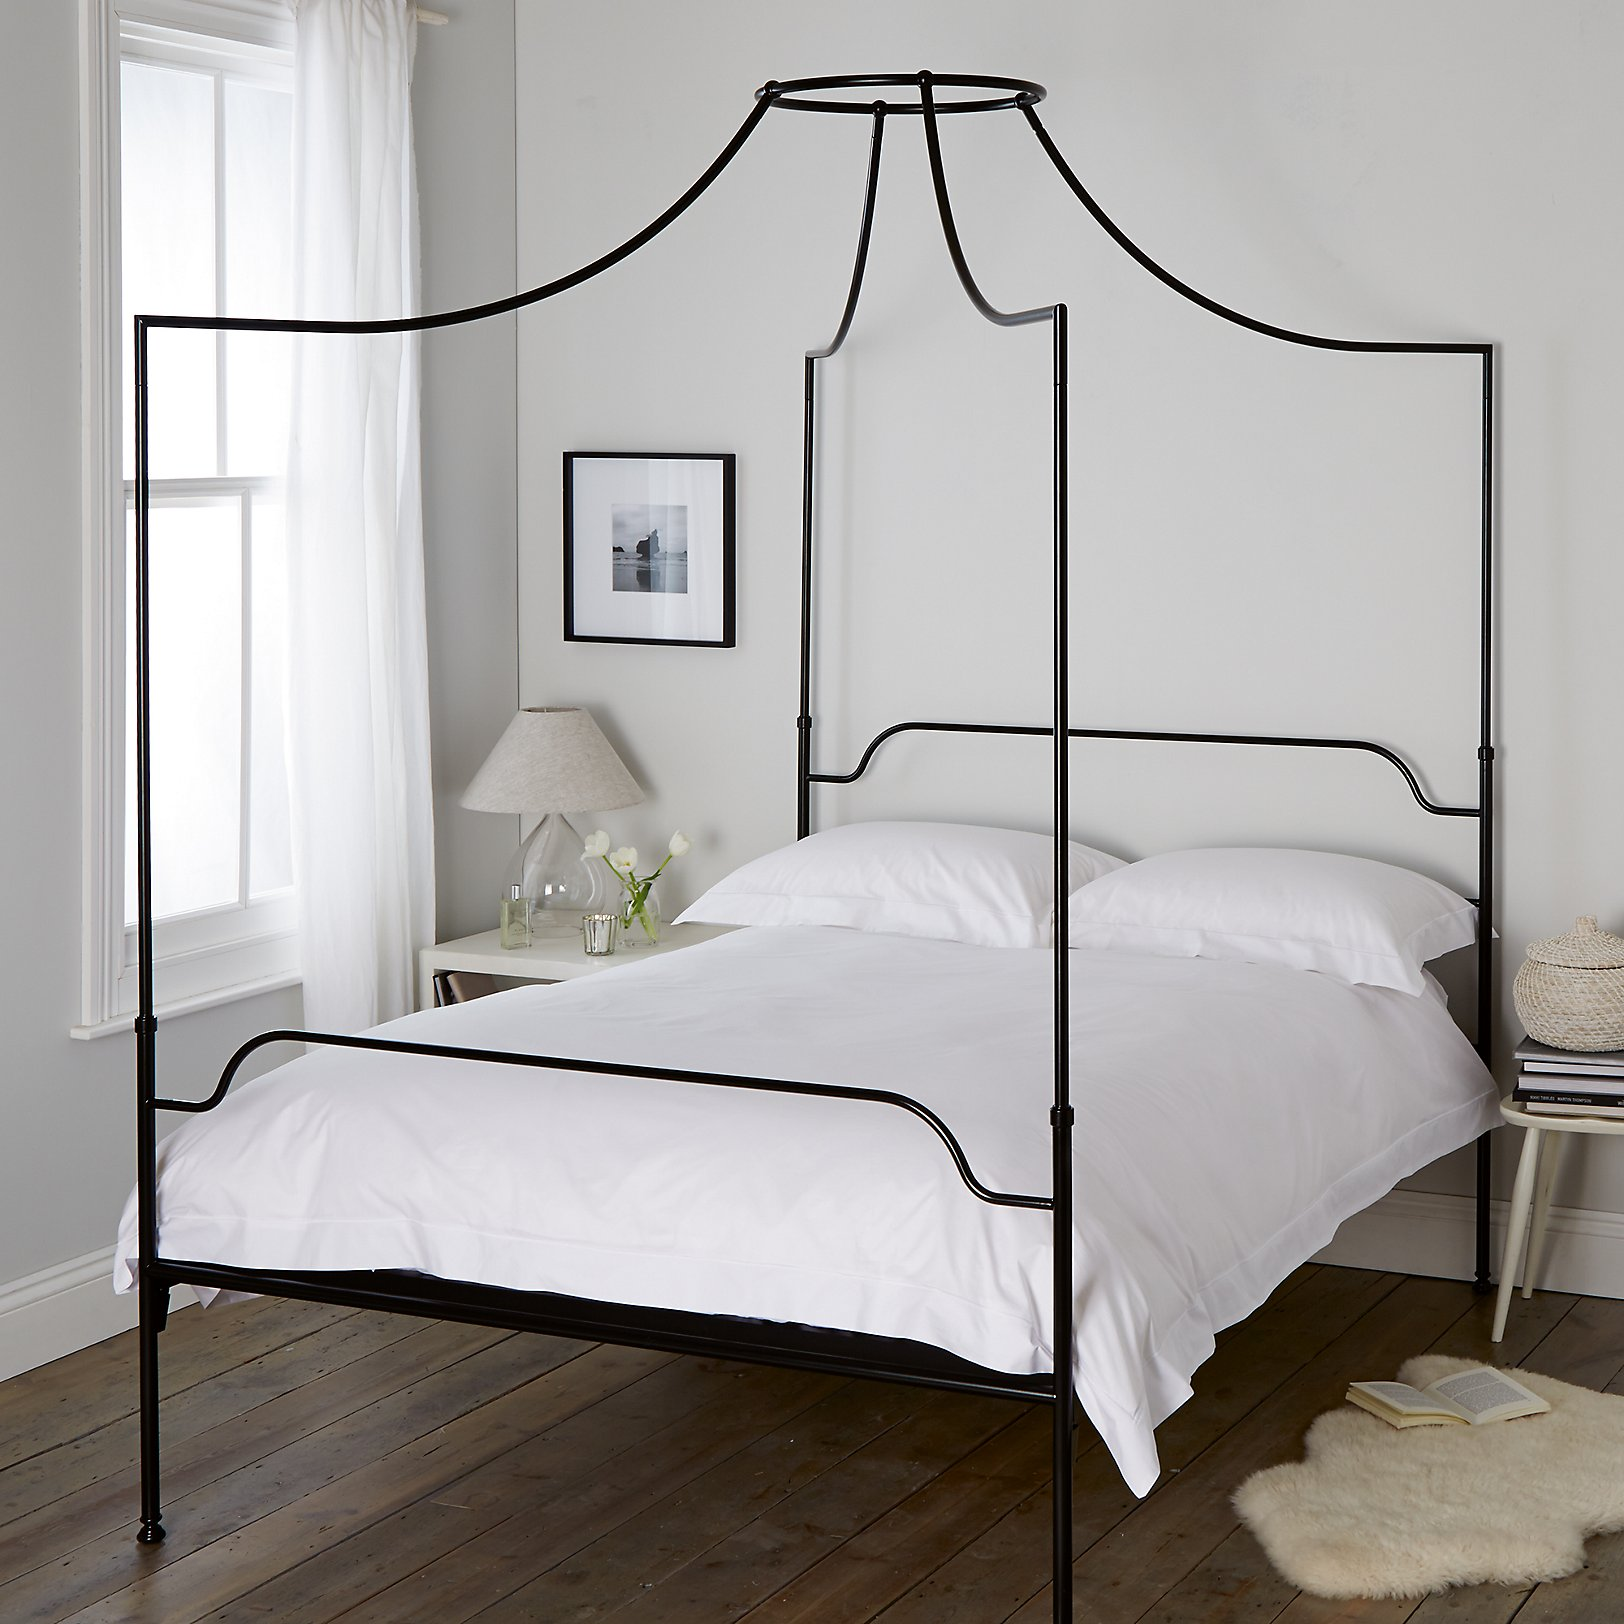 . Beaumont Four Poster Bed   Beds   The White Company UK